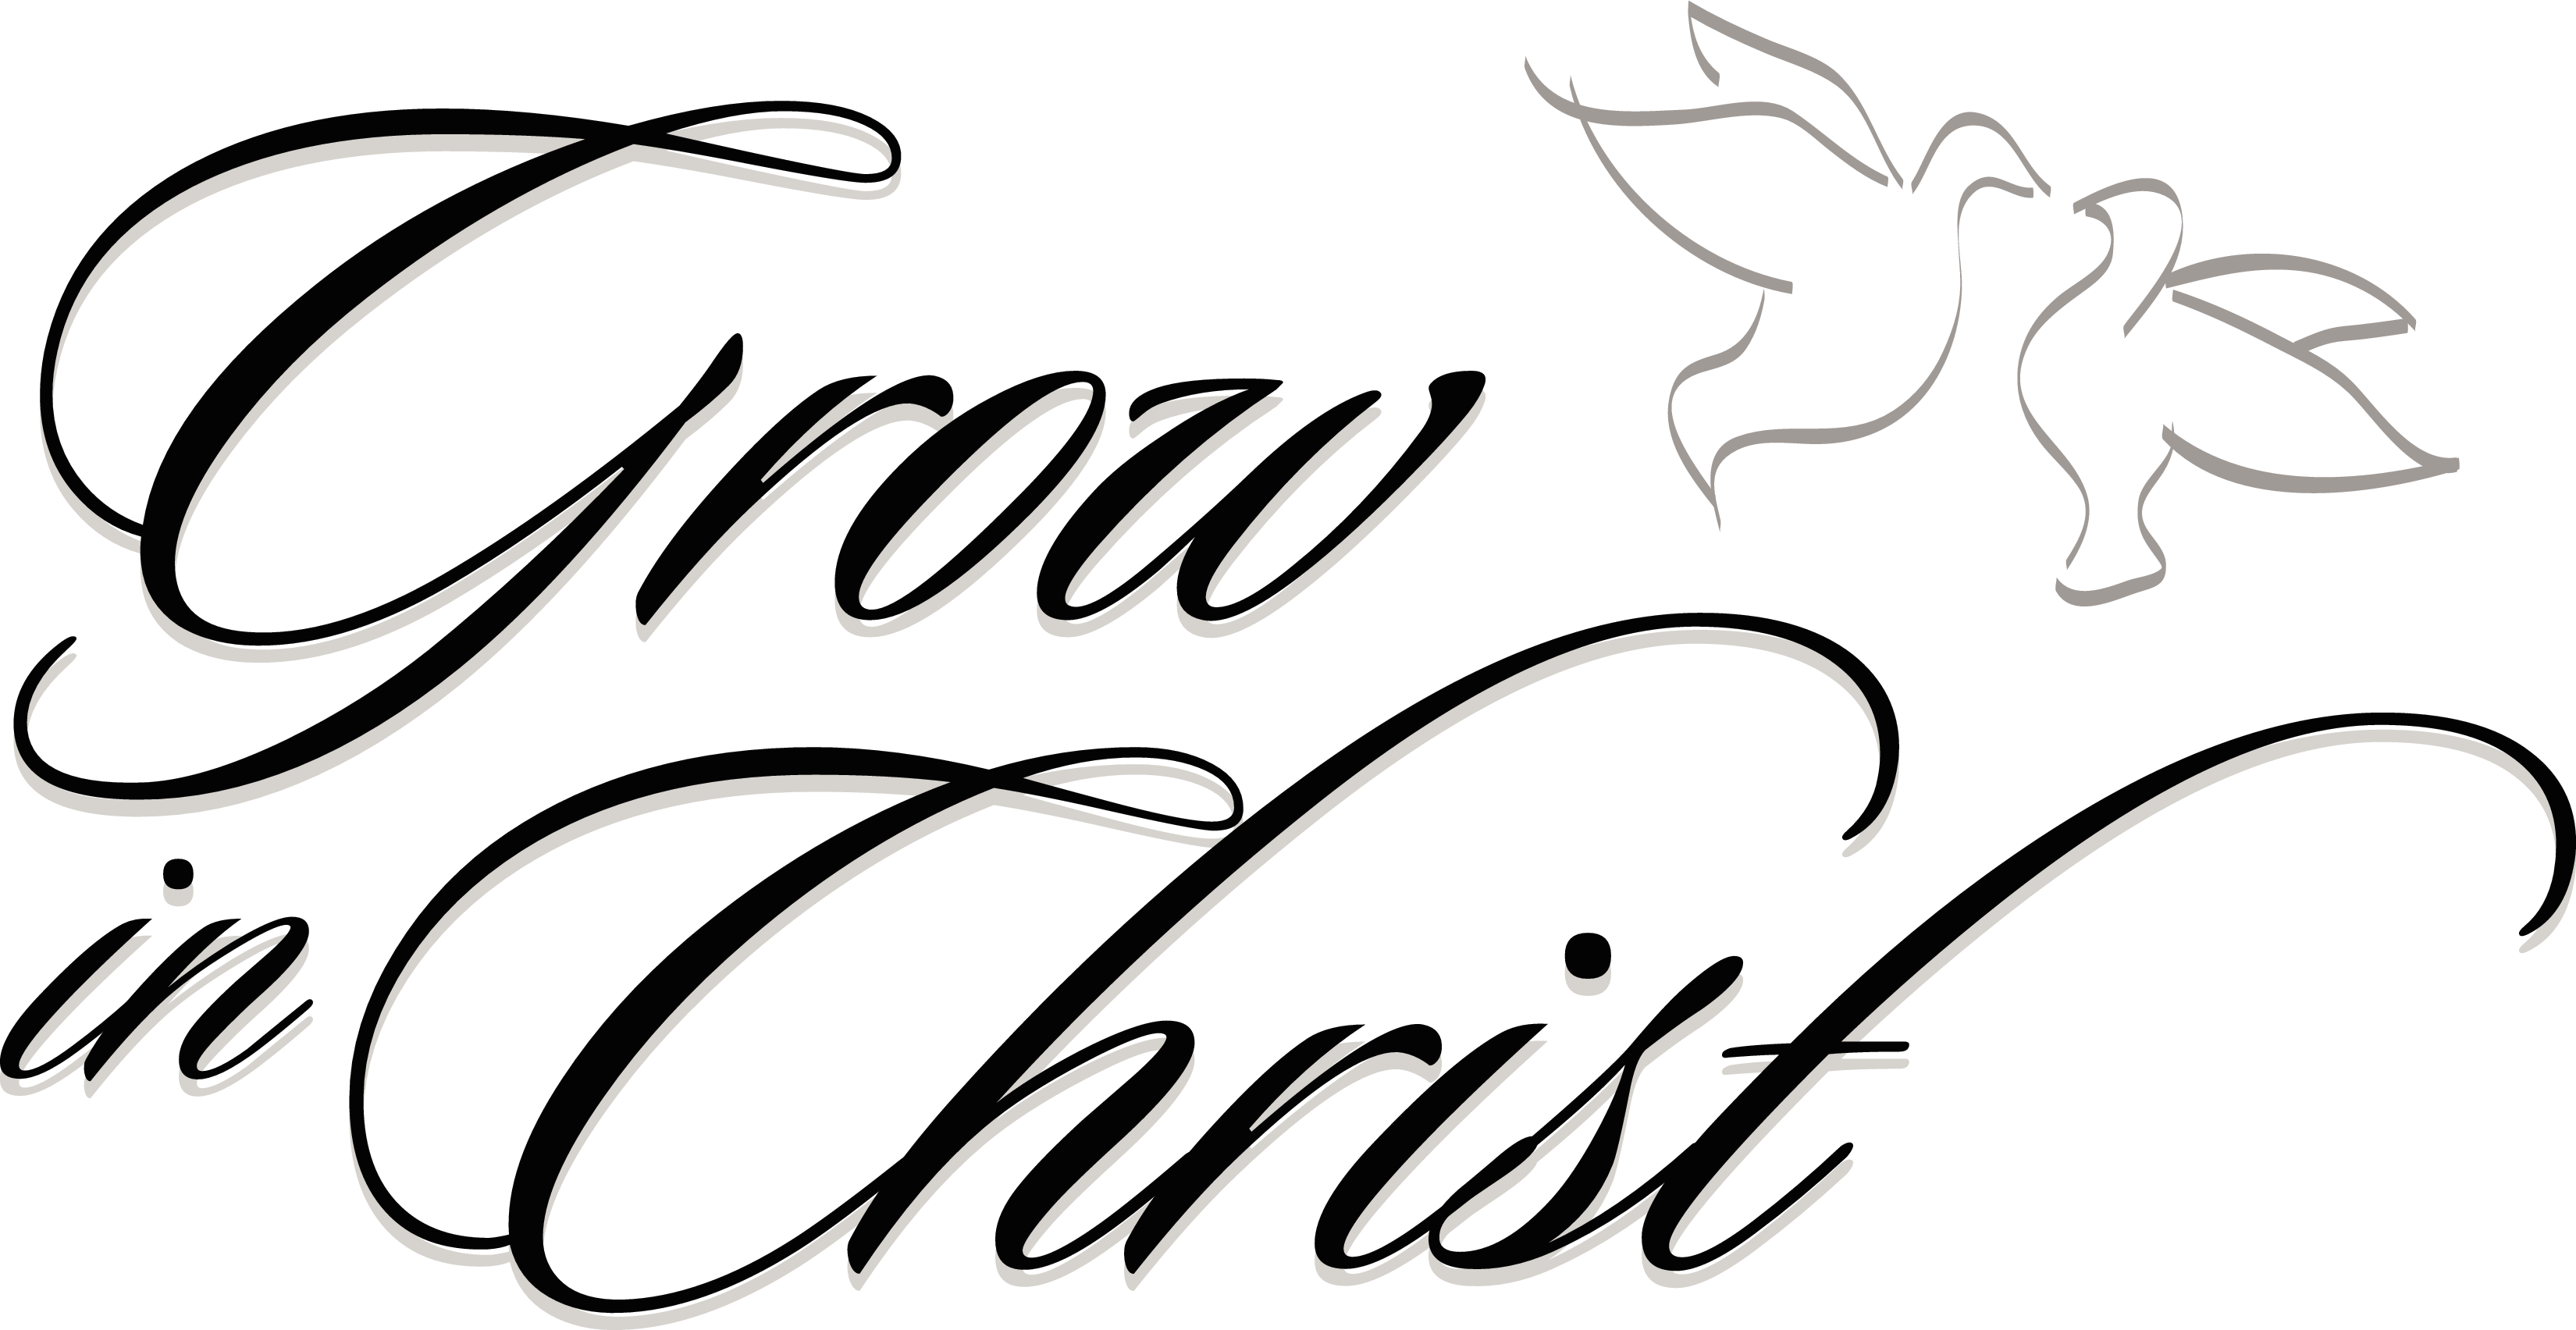 3300x1704 Religious Free Christian Clipart Images Clipart Image 7 2 Image 3